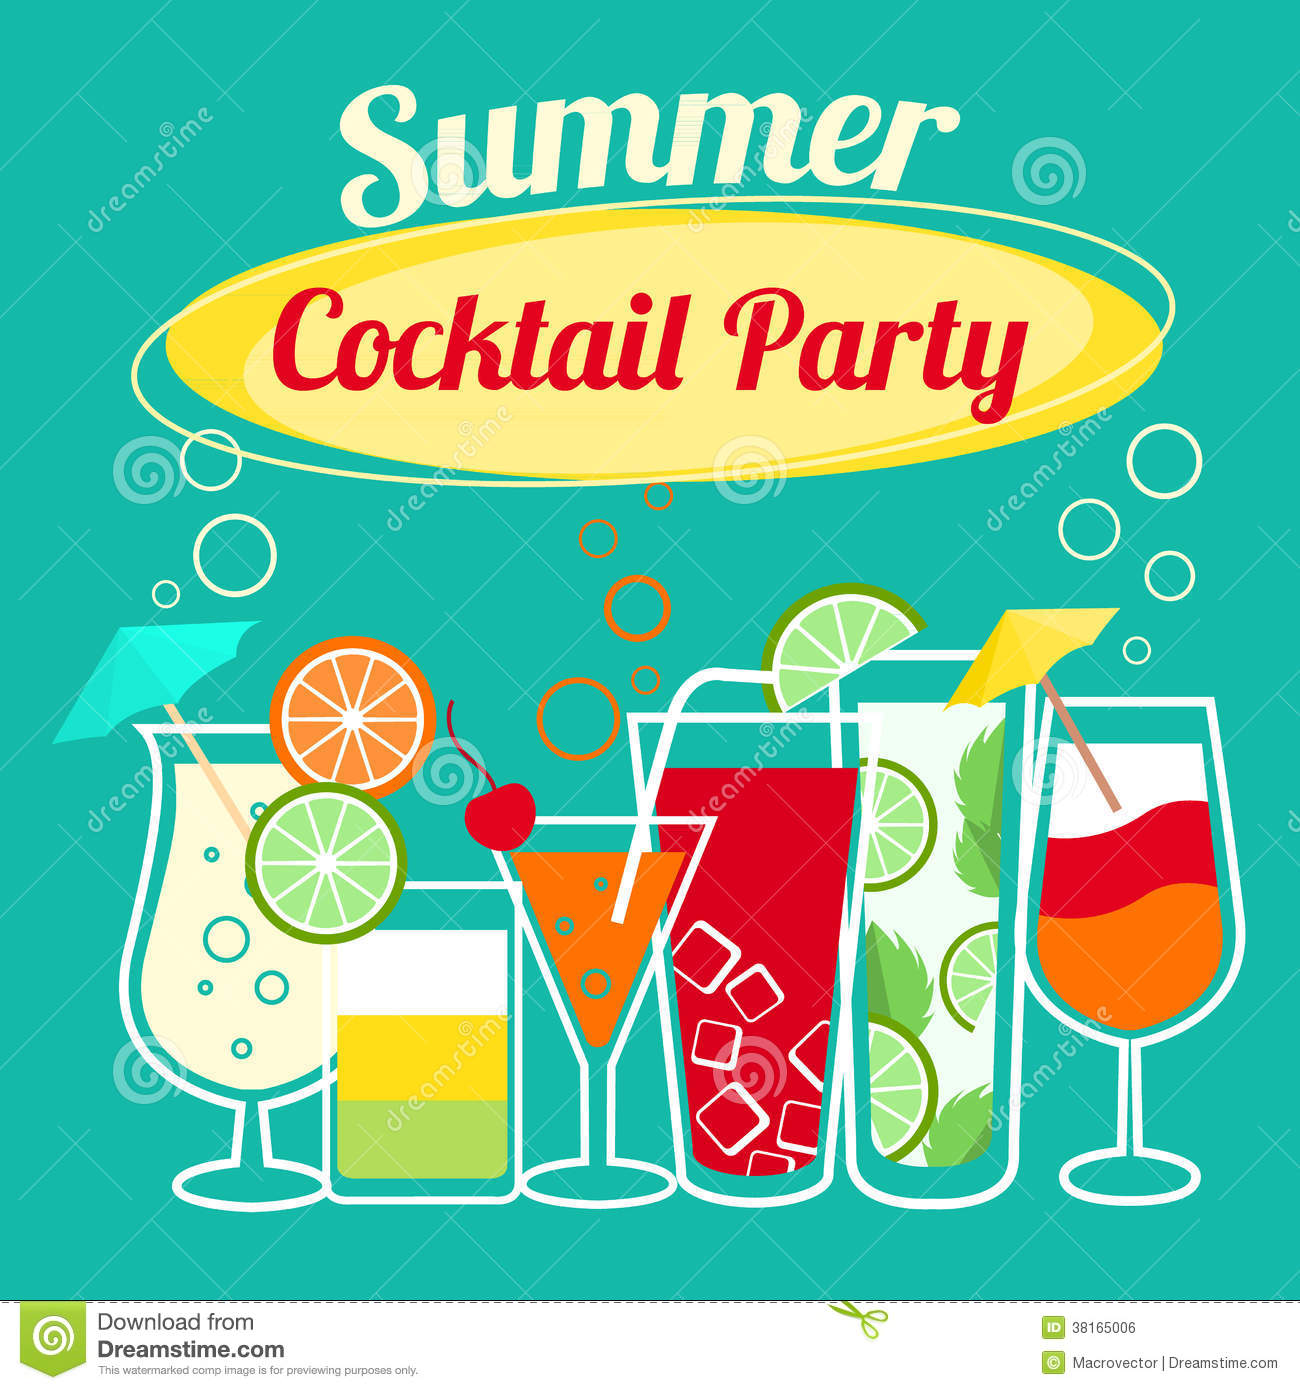 summer cocktails party template stock vector illustration of beverage flyer 38165006. Black Bedroom Furniture Sets. Home Design Ideas